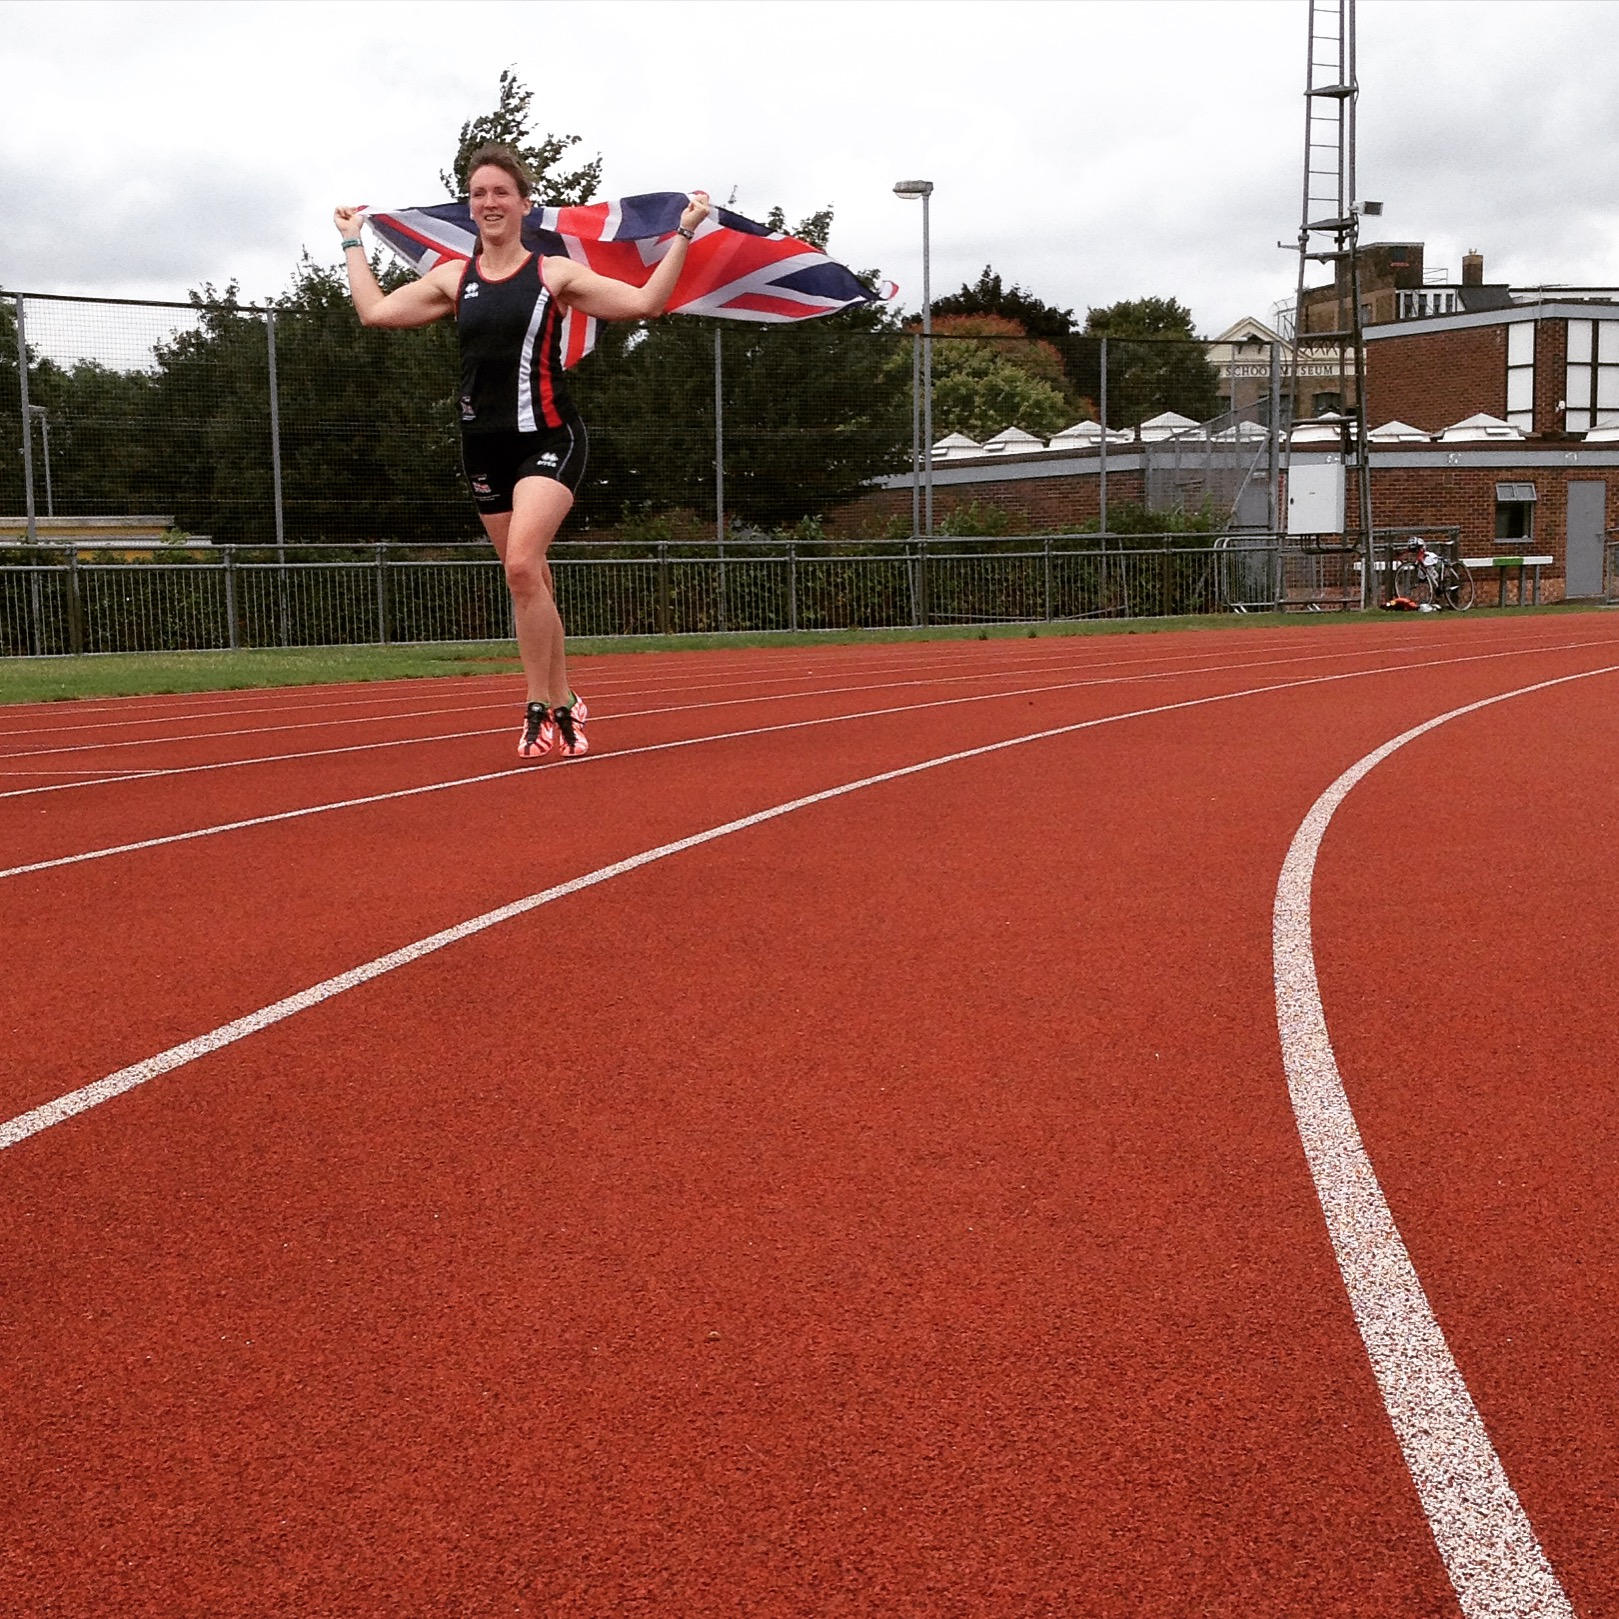 Running with the Union Jack